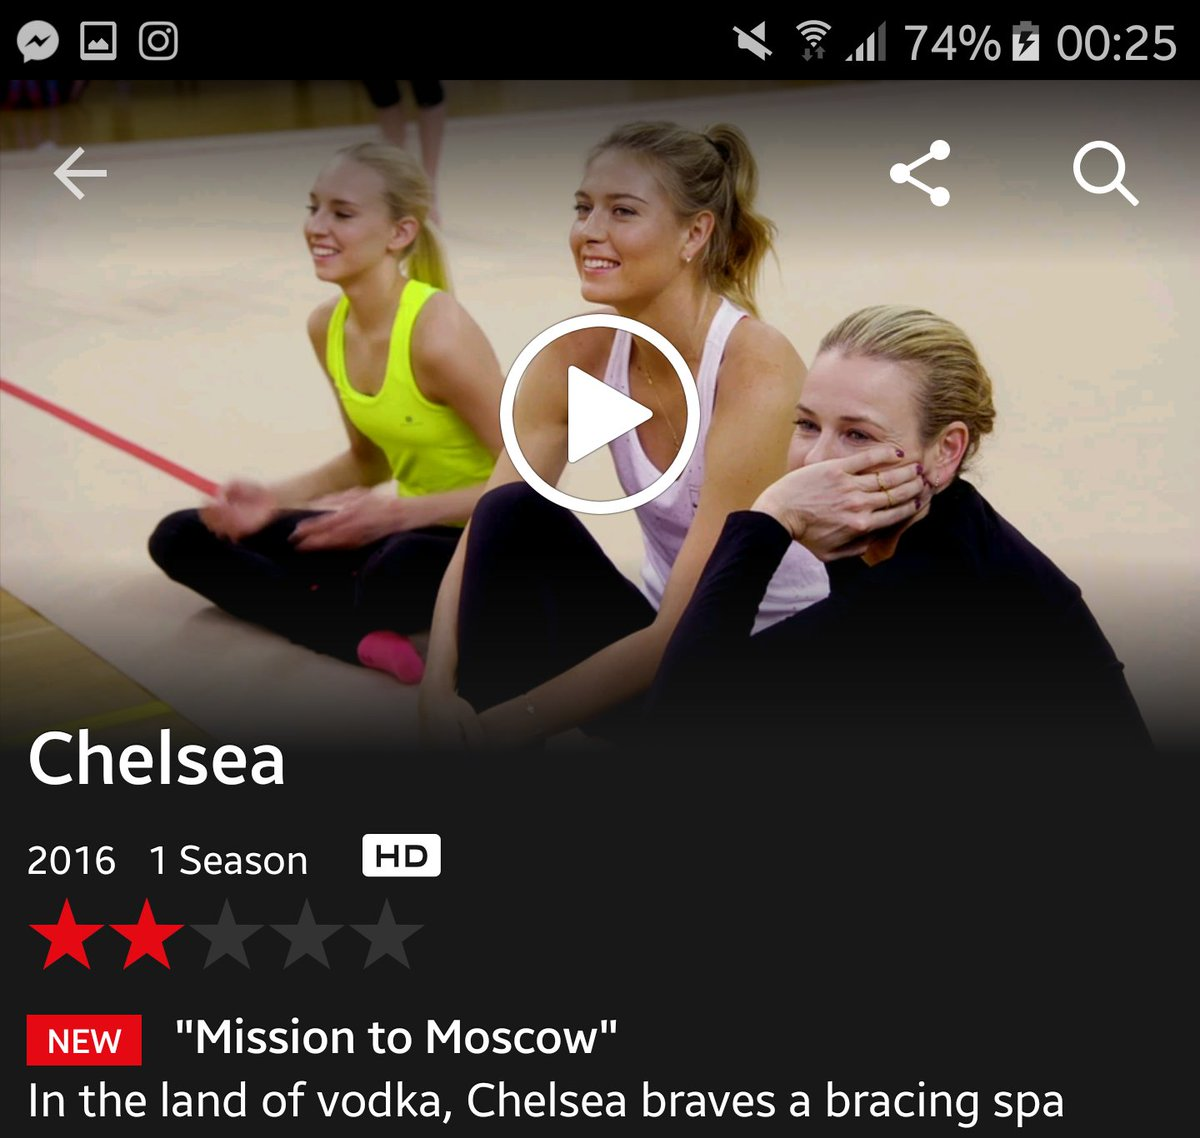 RT @Mia_3sk: My turn to watch you @MariaSharapova  being your silly self ???? I'm already sure it's the best epi of the show so far???? https://t…